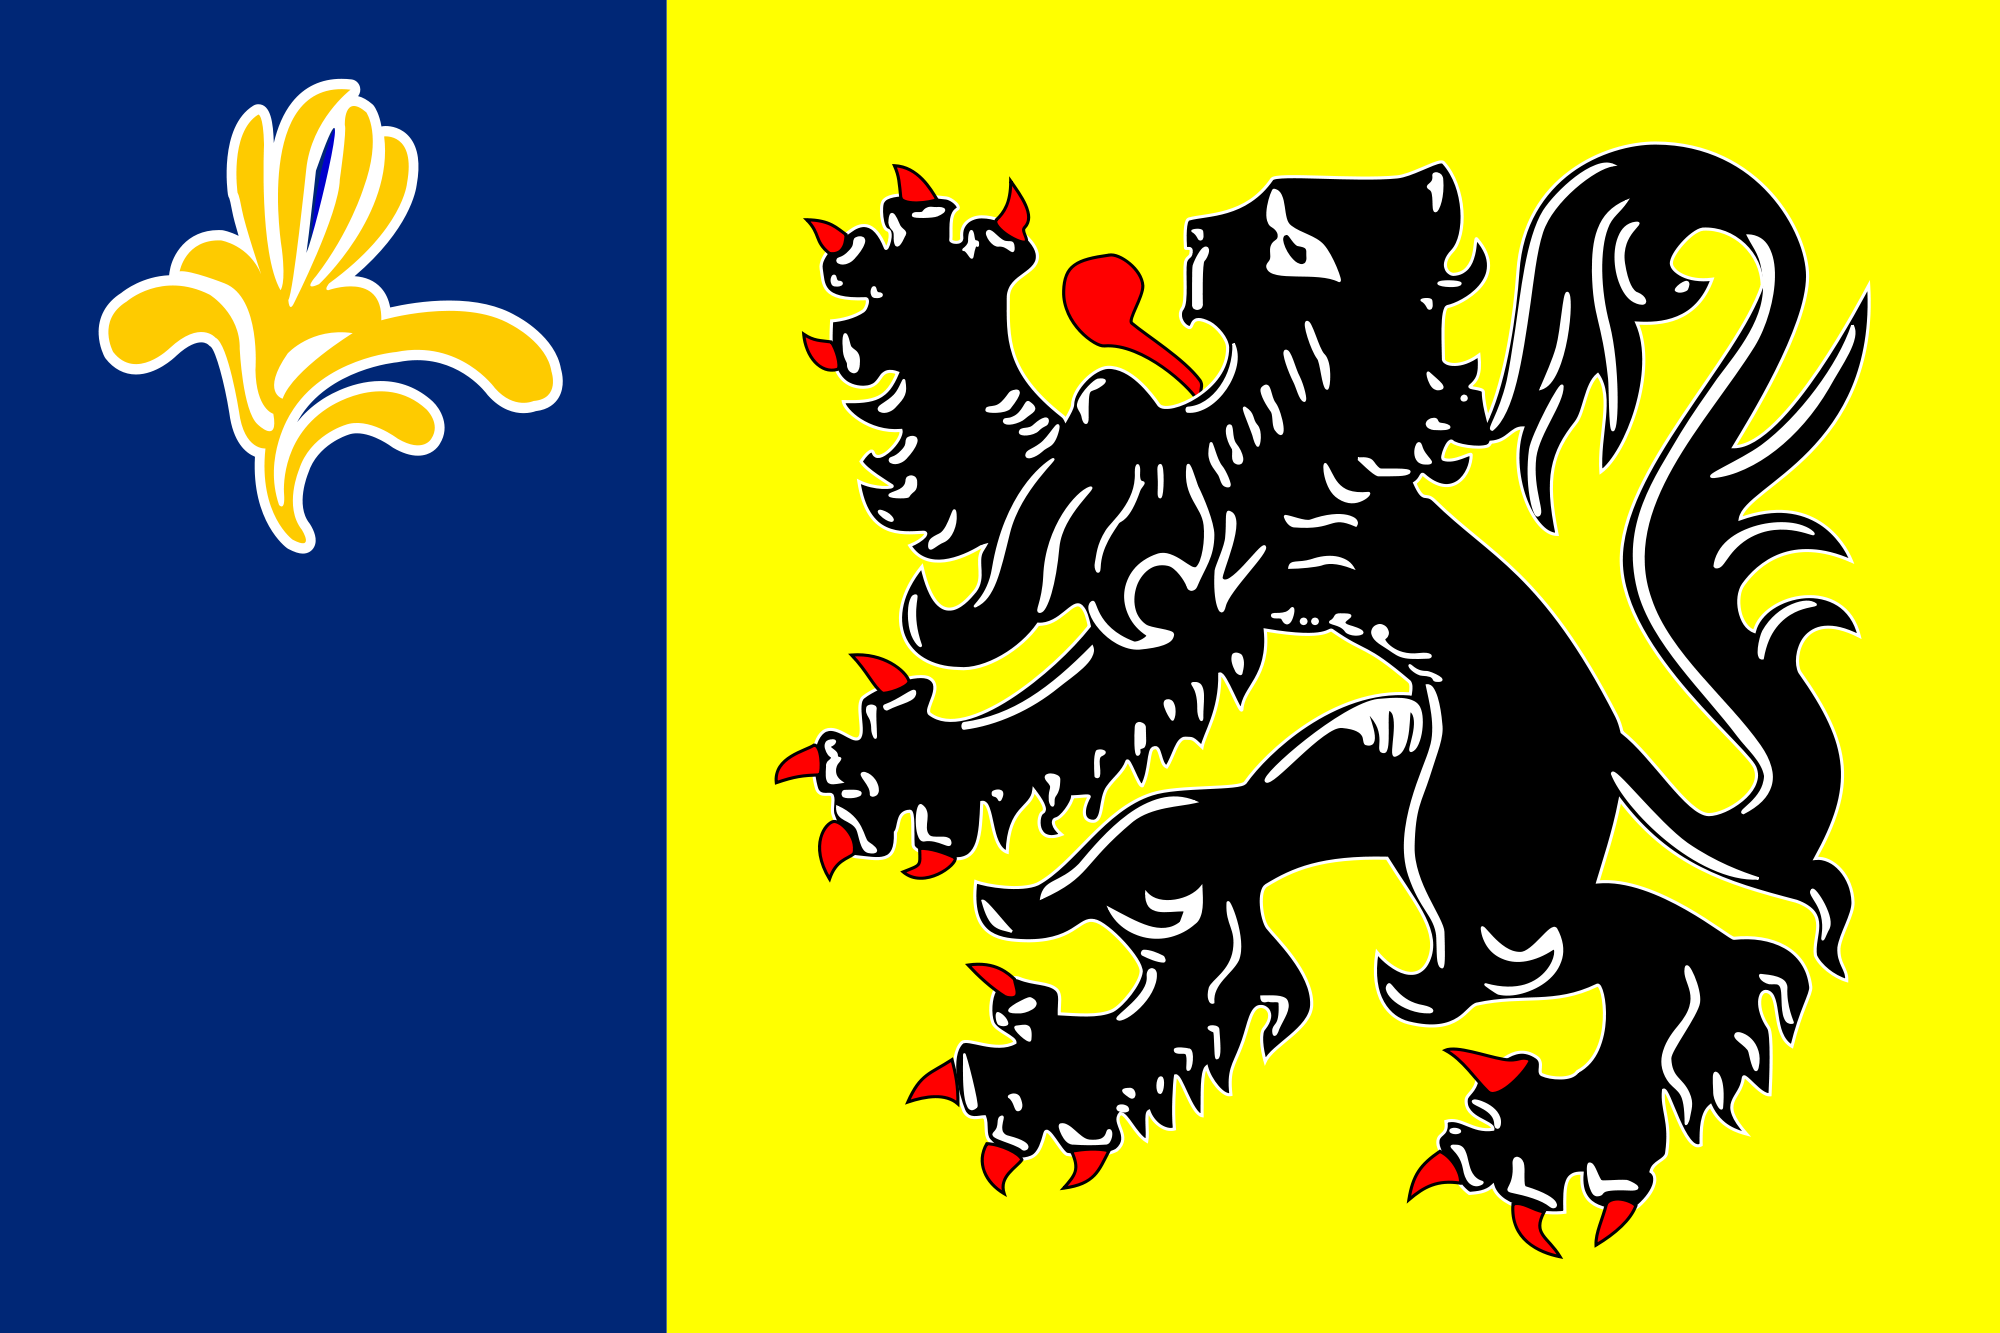 Flag of the Flemish Community Commission